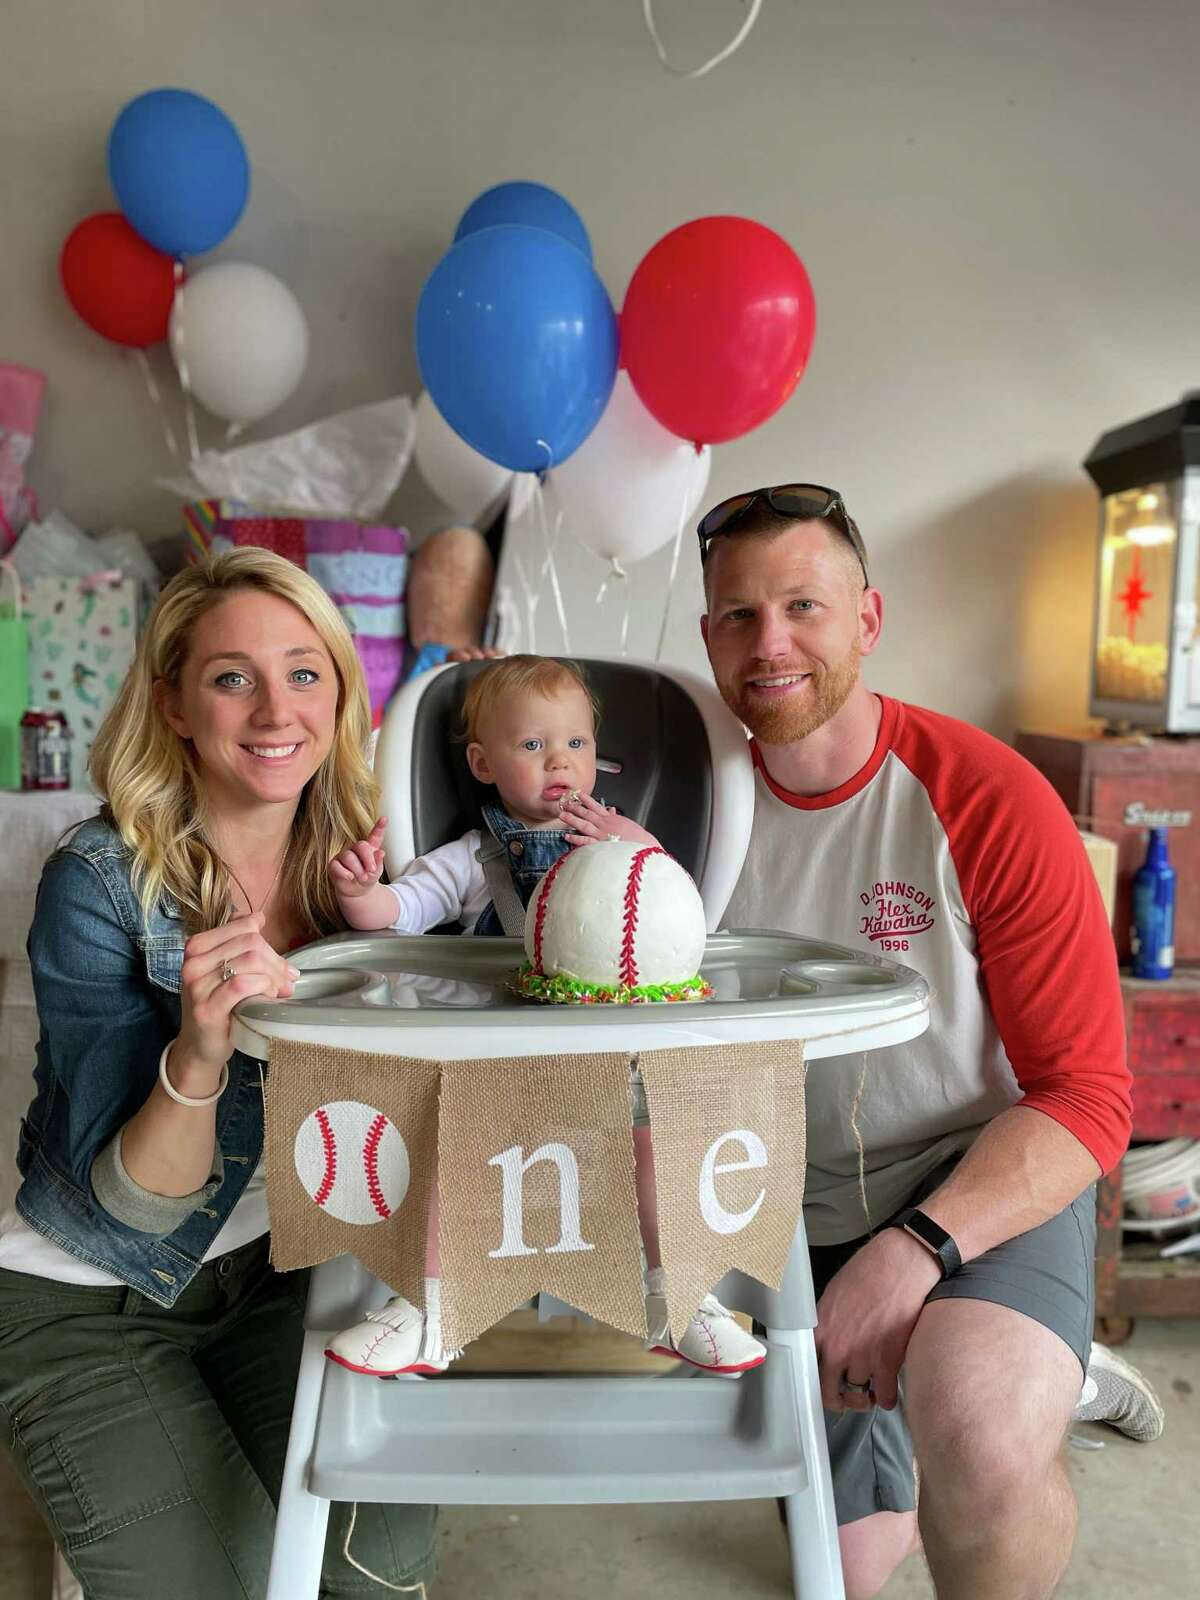 Layla, born to Katie Clunan and her husband on April 20 at Danbury Hospital, celebrates her first birthday at home in Newtown.